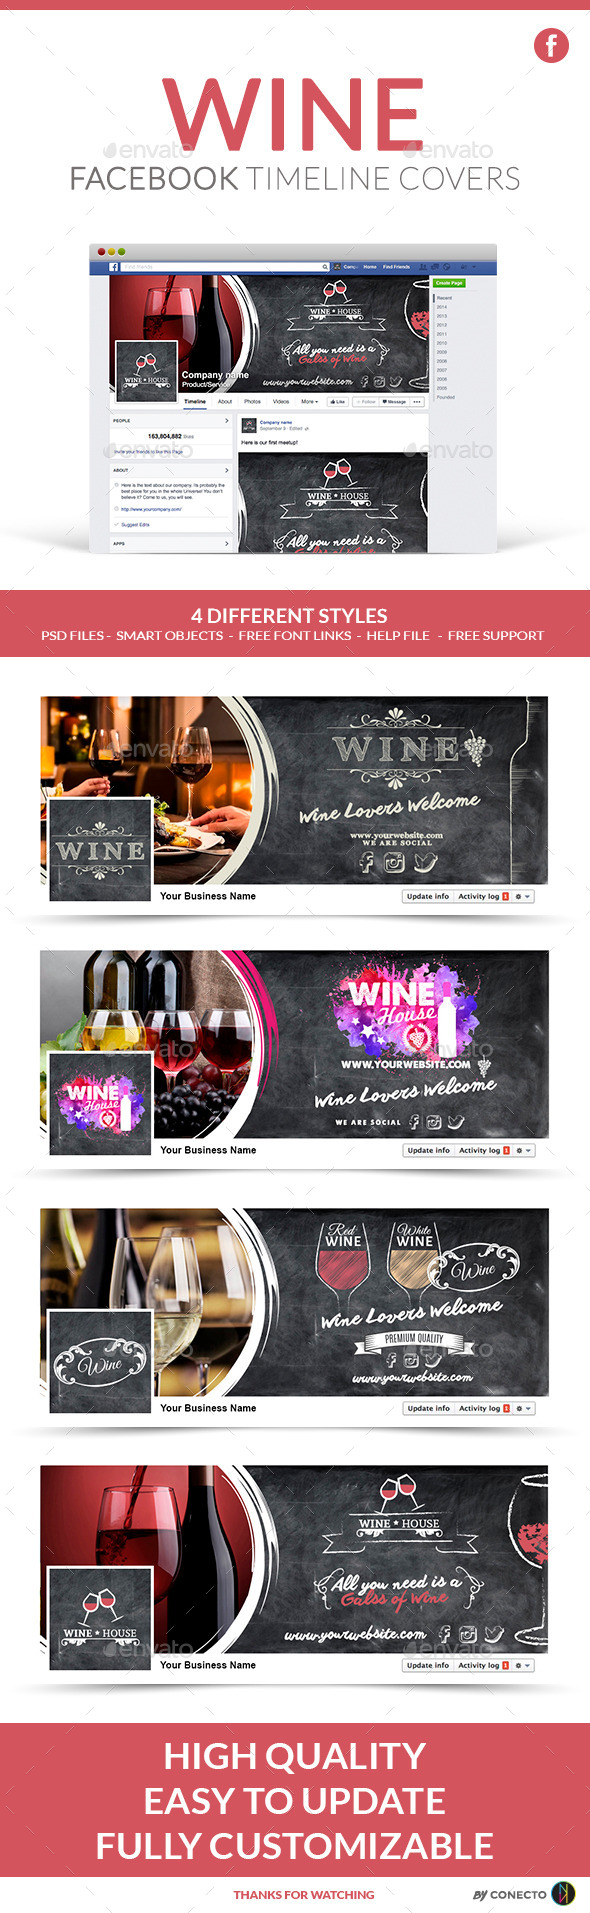 GraphicRiver Facebook Timeline Cover Wine 11892511